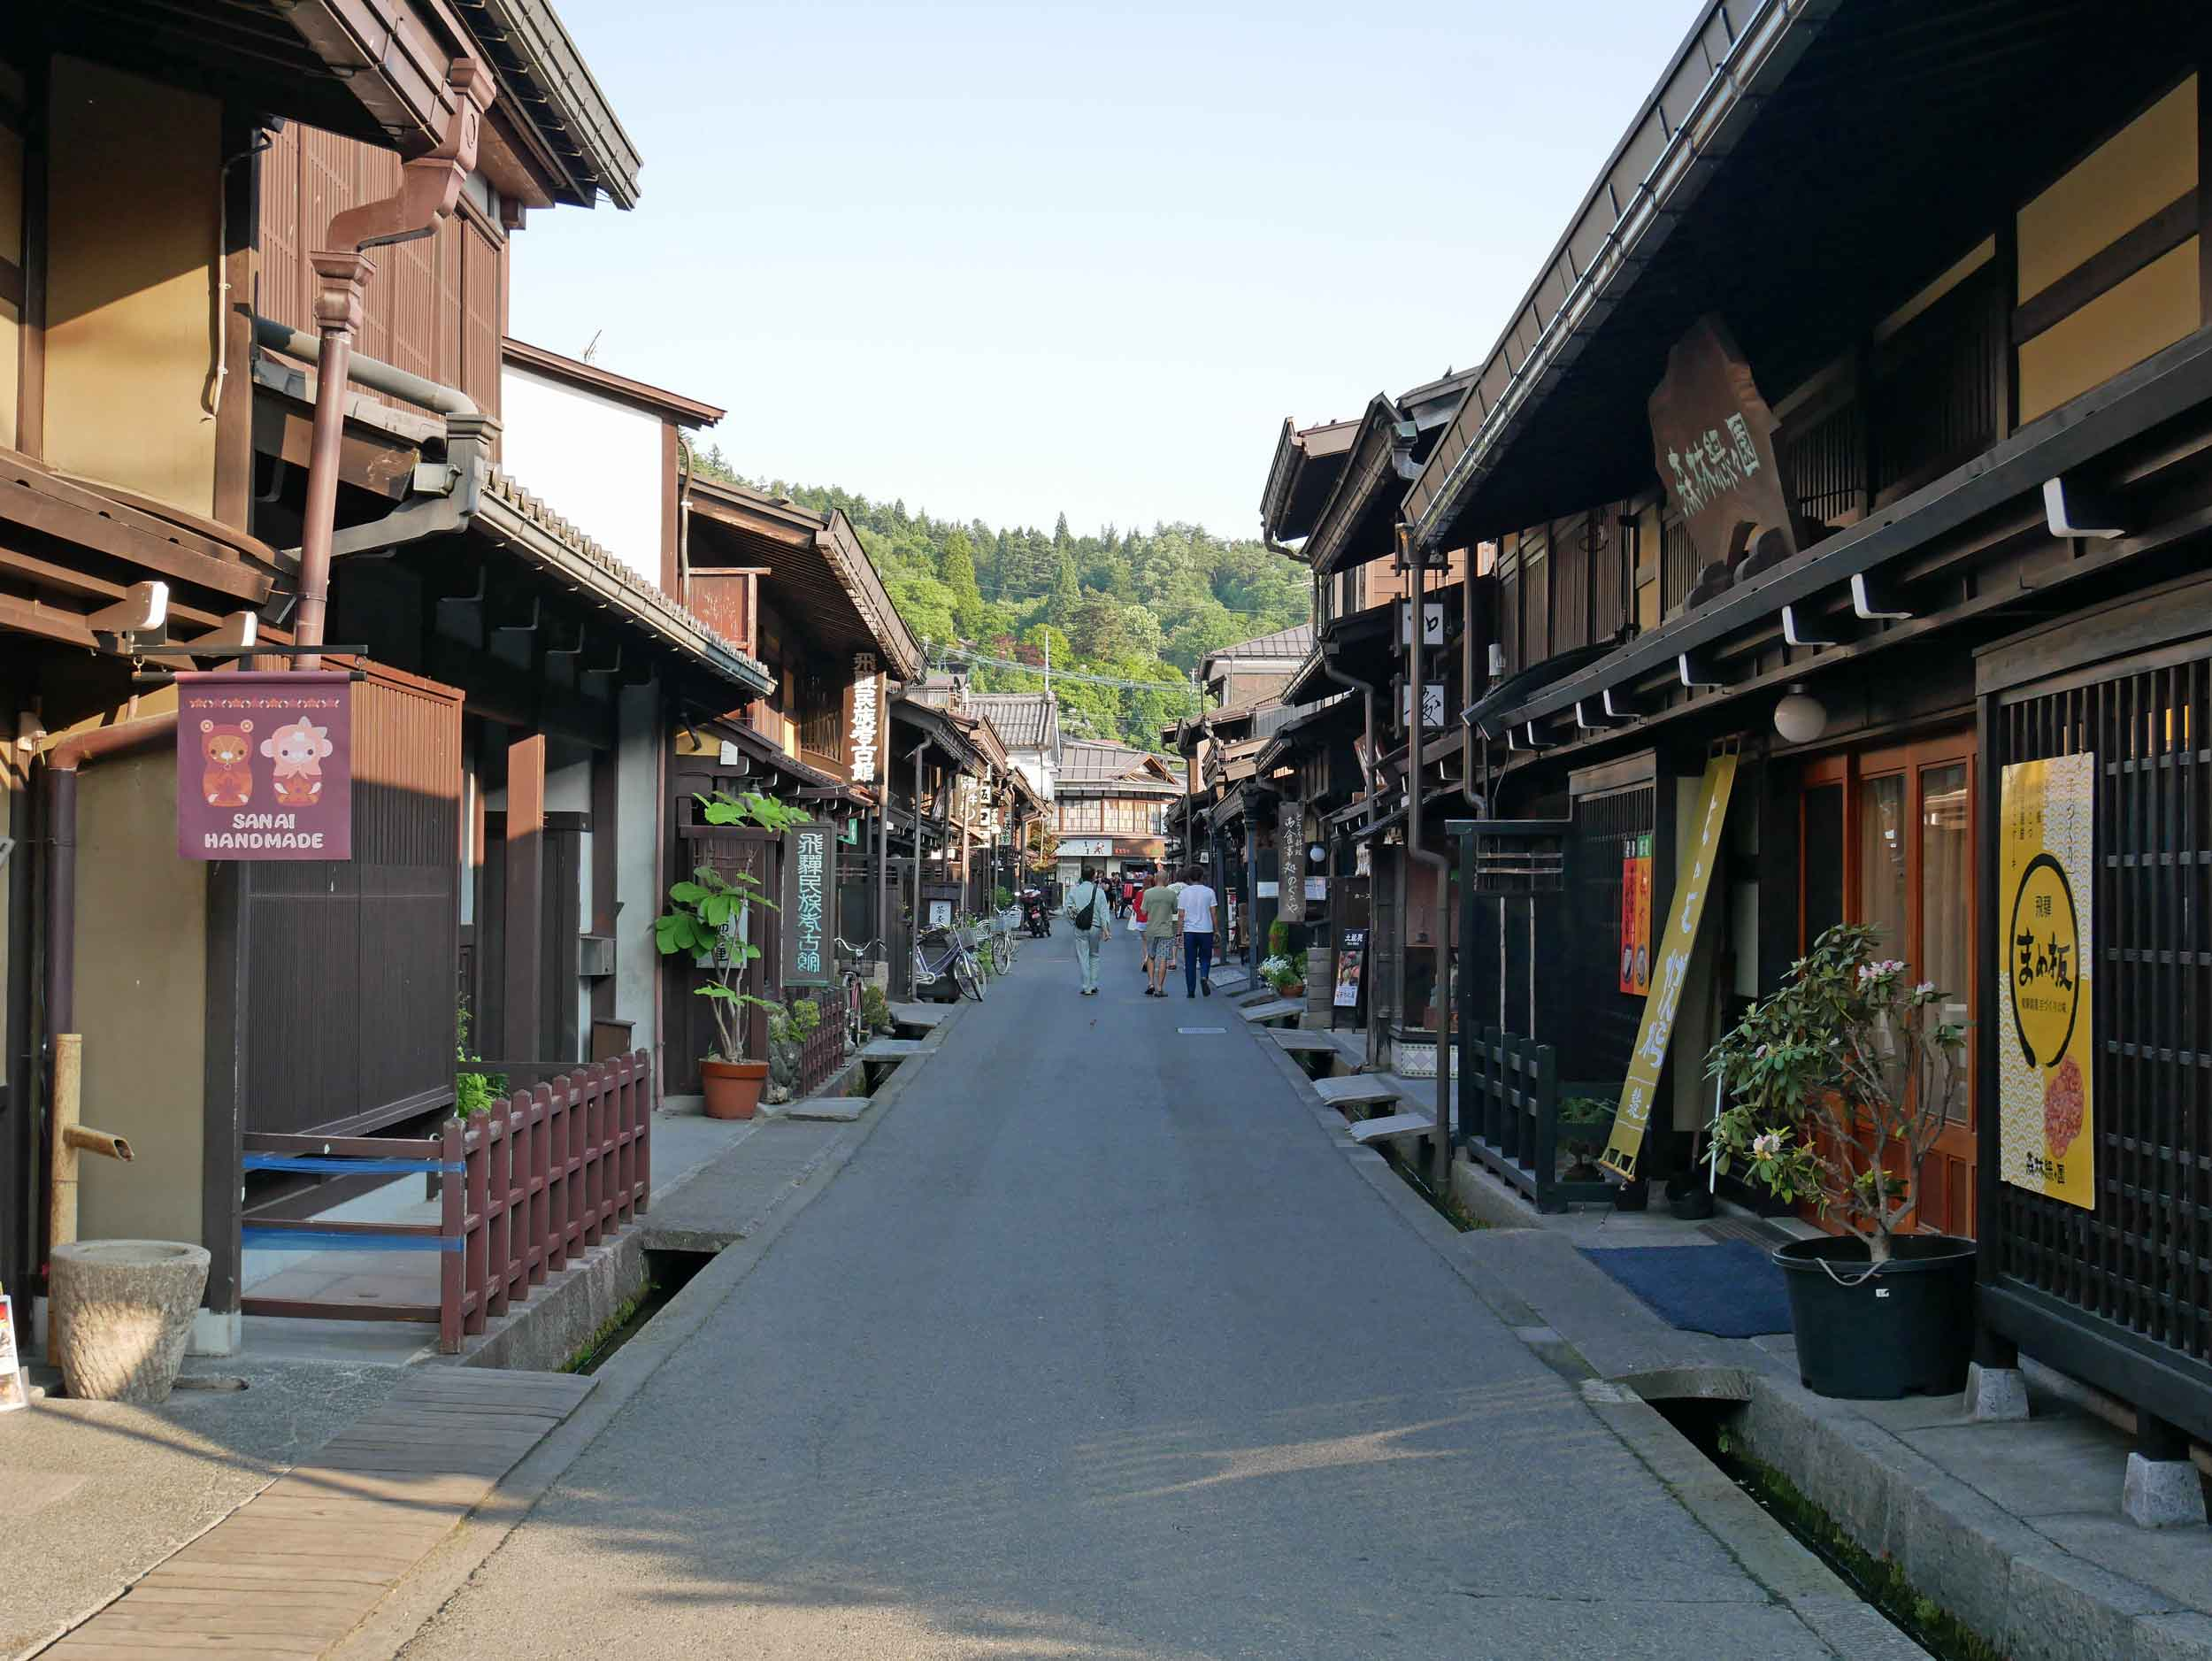 The old town of Takayama dates from the Edo period in the 1600s.